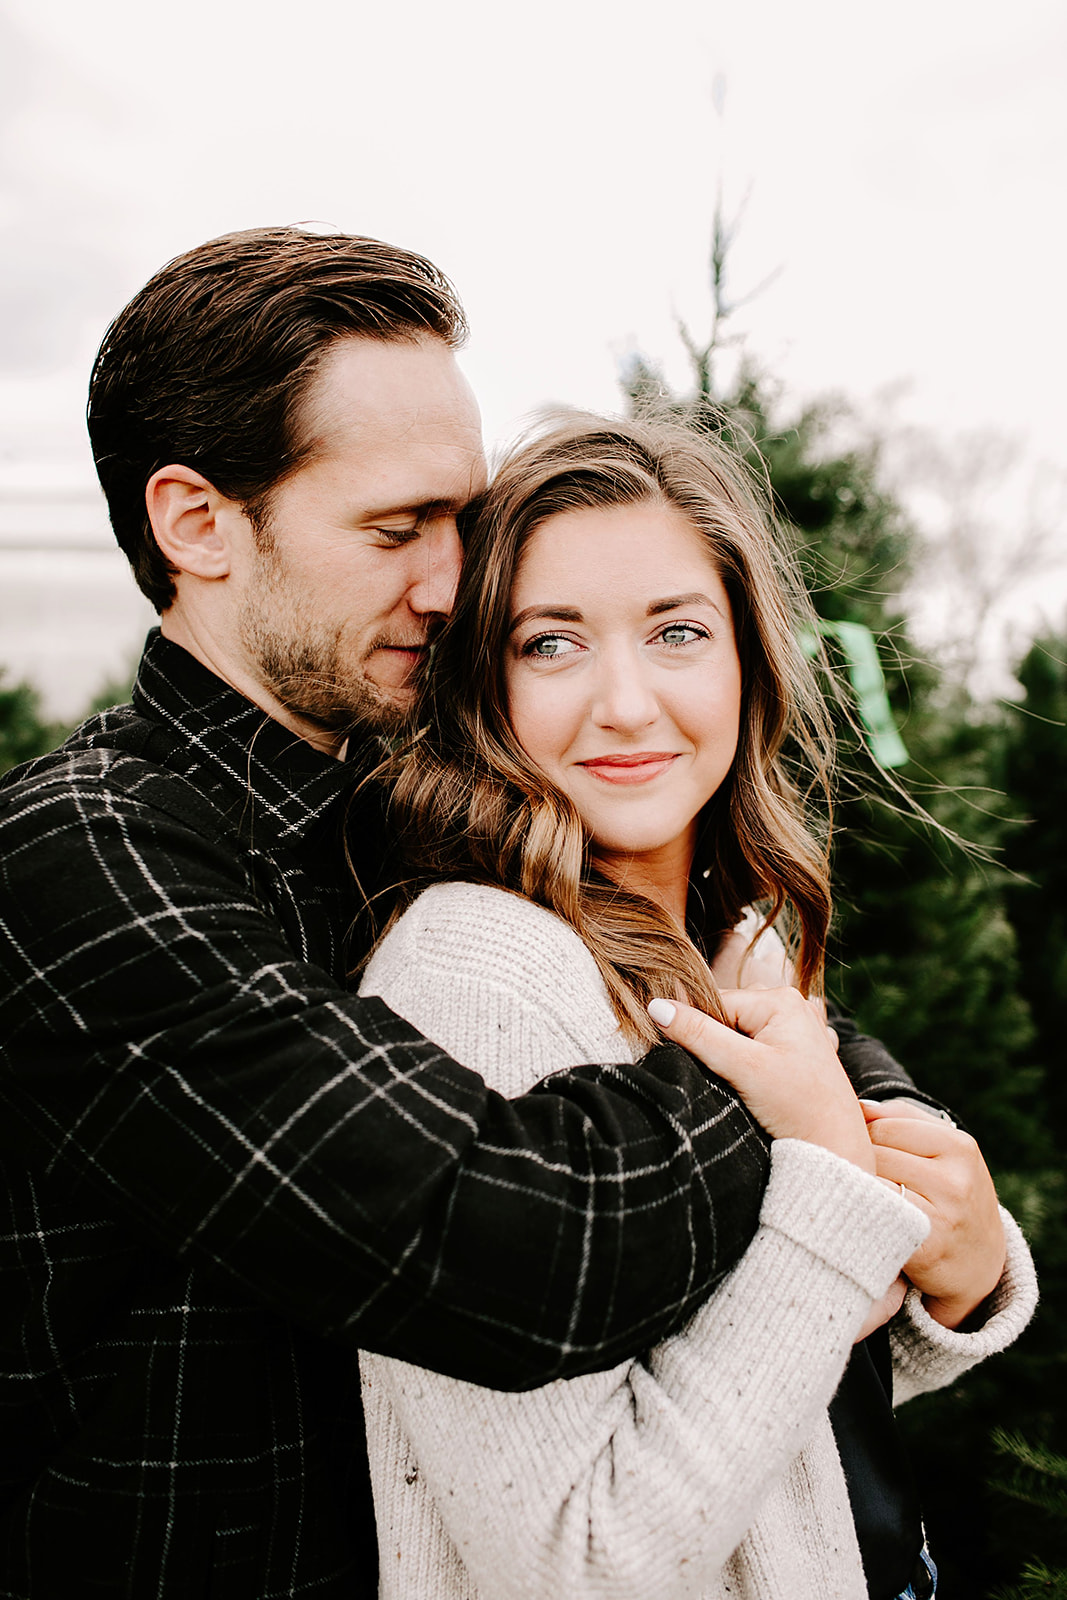 Alex and Andy Engagement Session in Noblesville Indiana by Emily Elyse Wehner Photography LLC-57.jpg